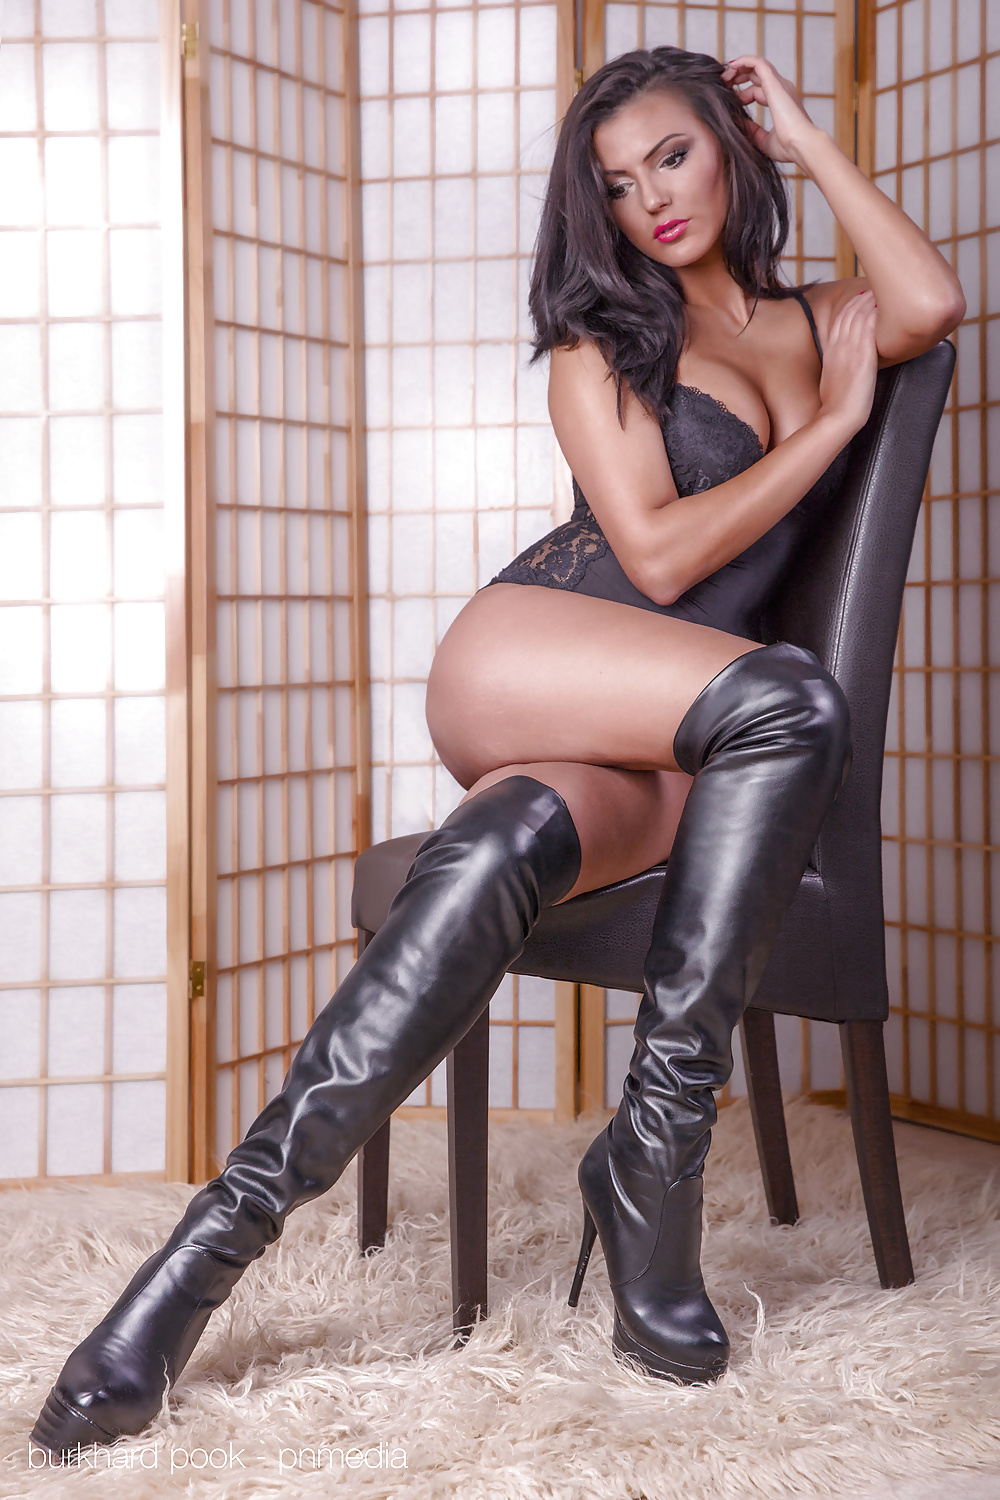 Thigh high boots pics and shemale porn images